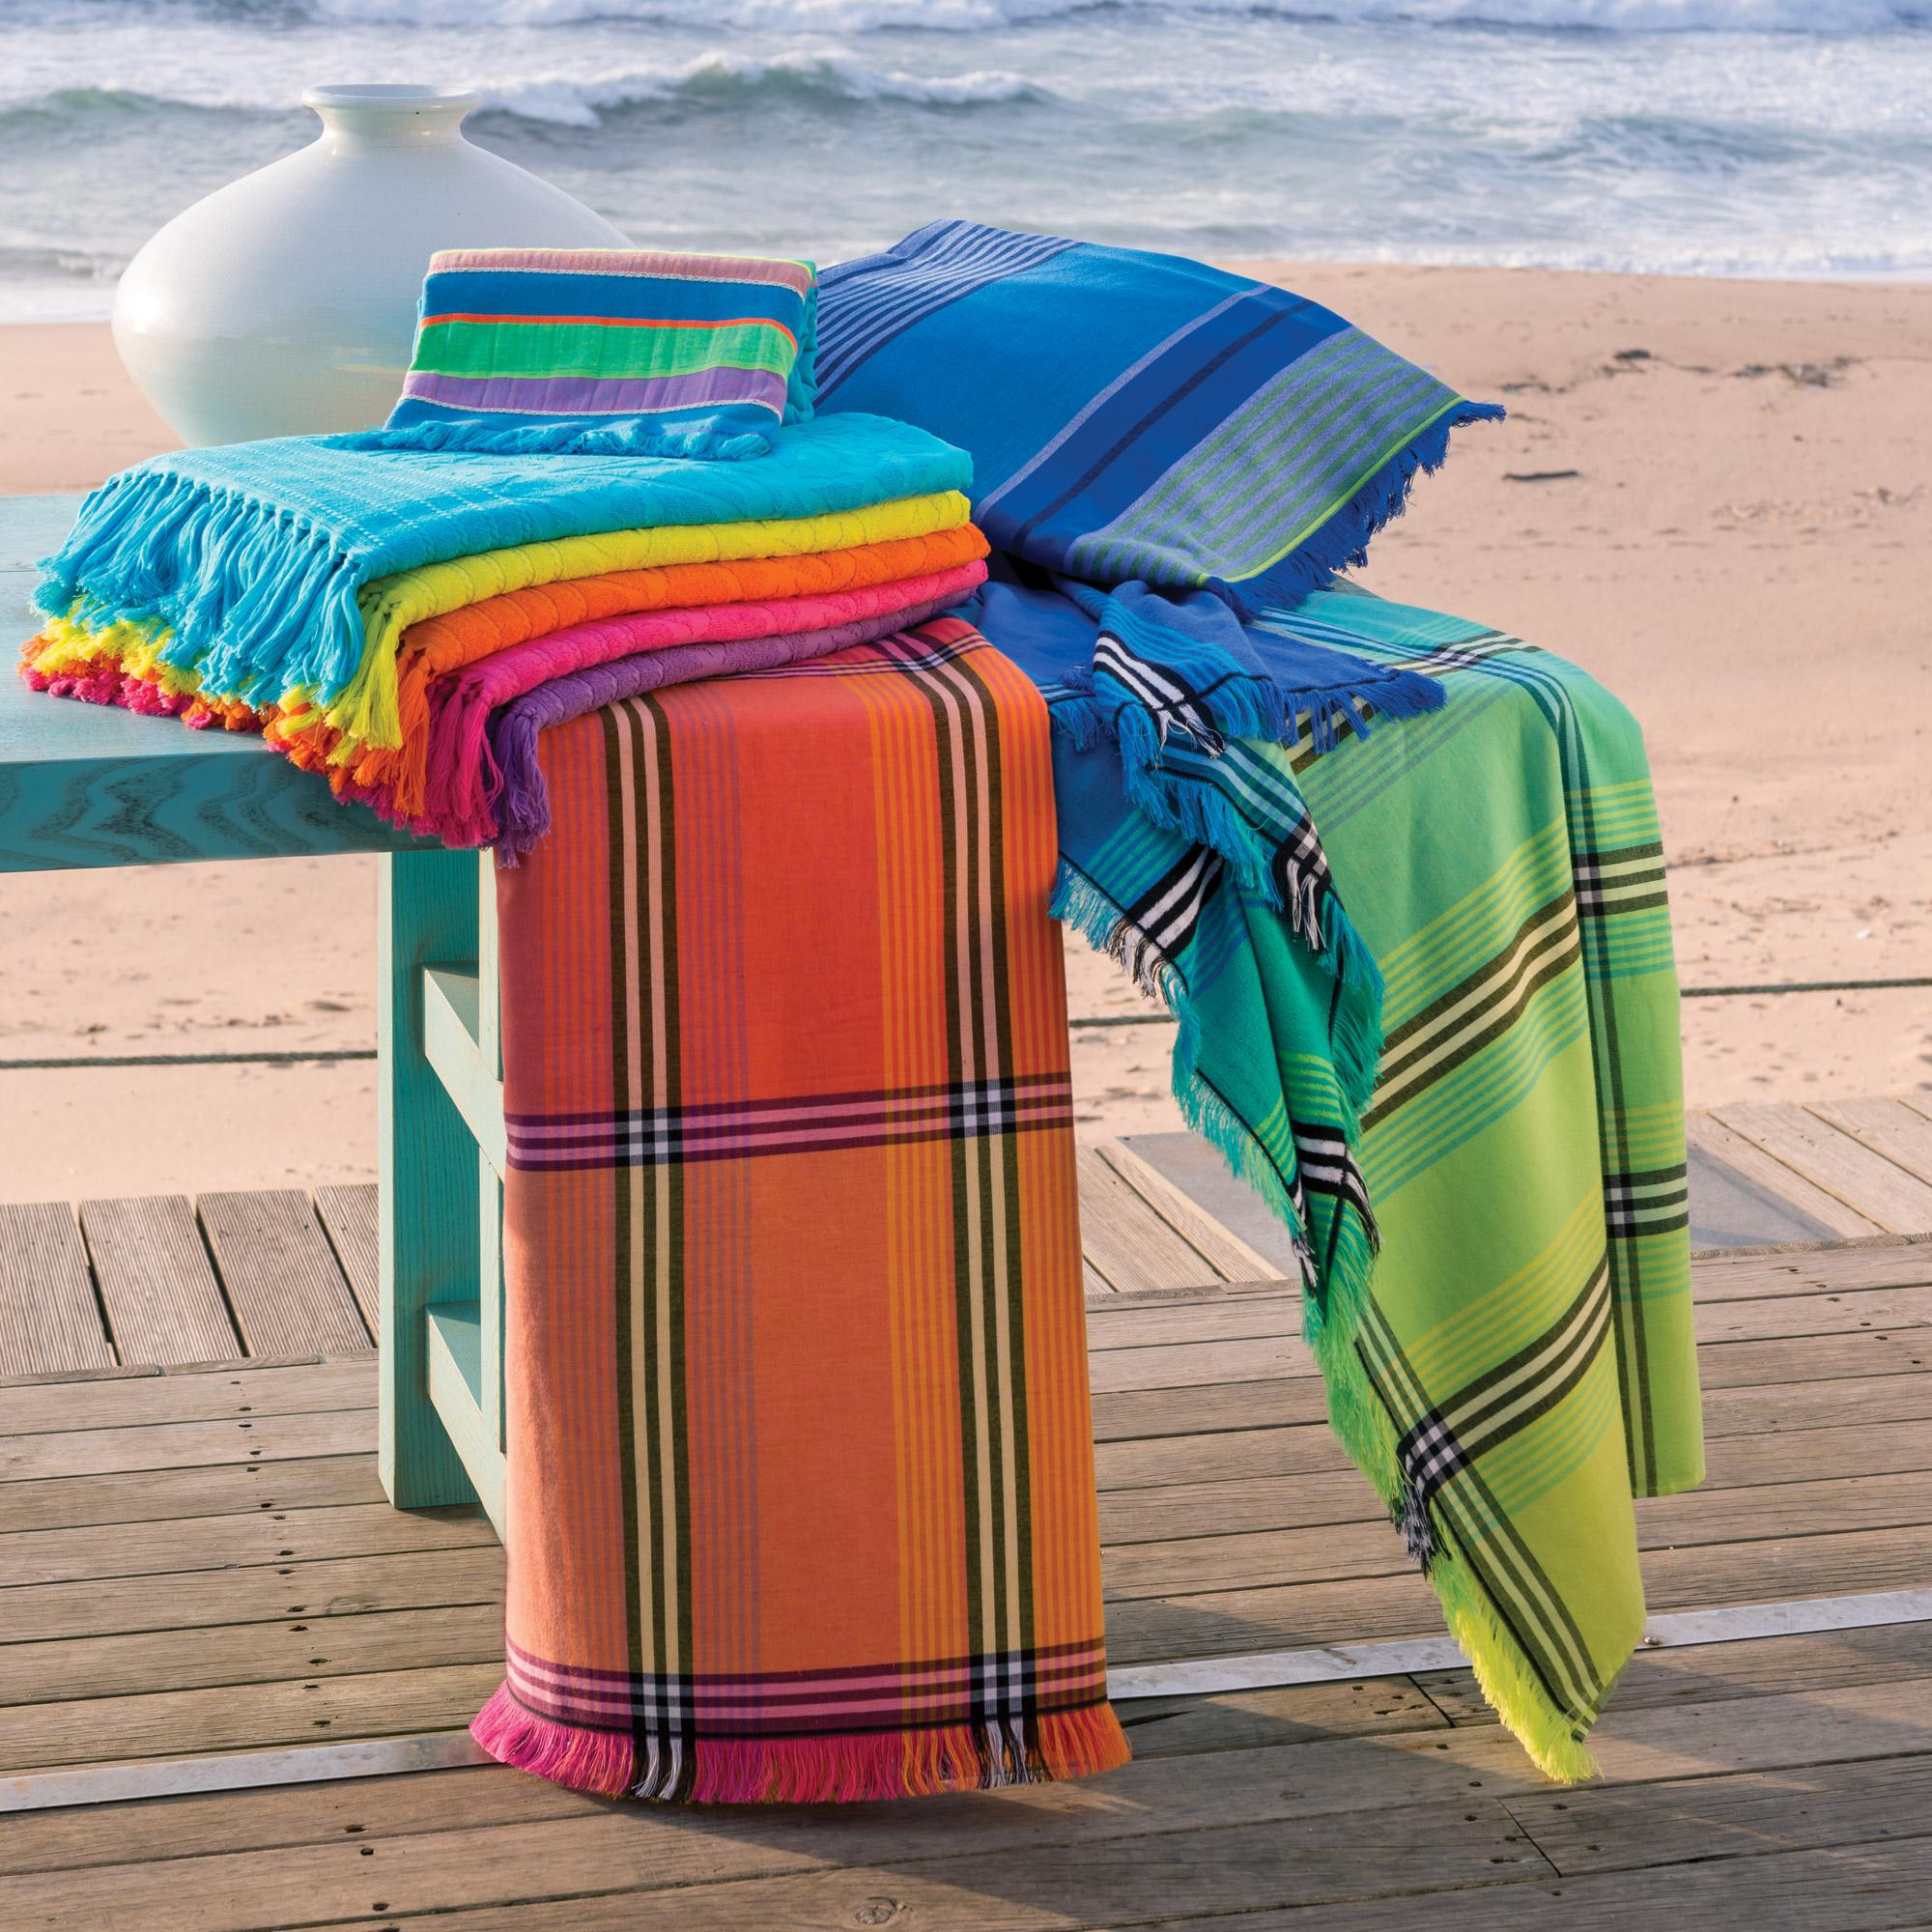 drap de plage fouta 100x180 100 coton 270 g m vallevo. Black Bedroom Furniture Sets. Home Design Ideas